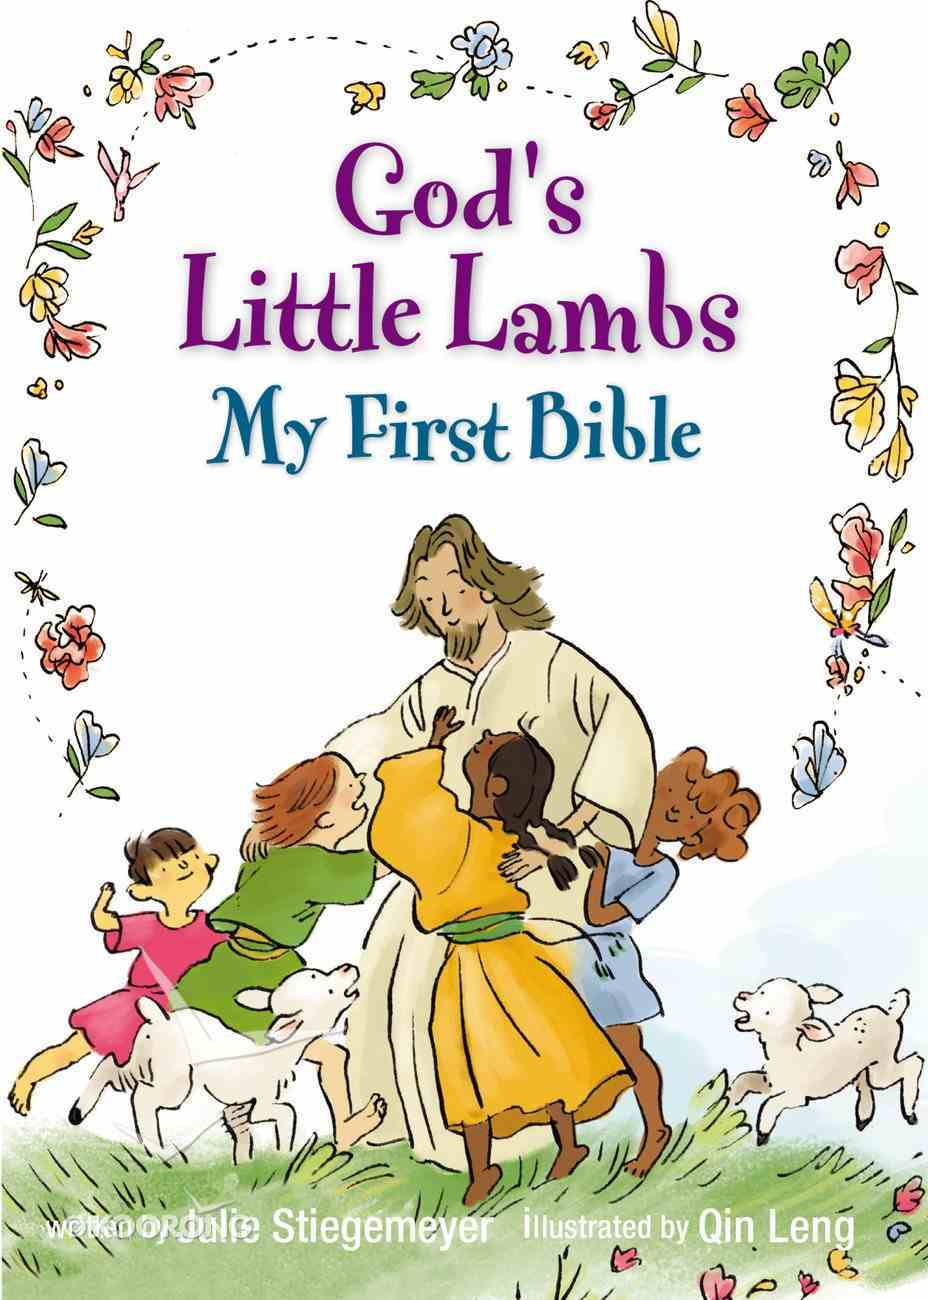 God's Little Lambs, My First Bible Board Book